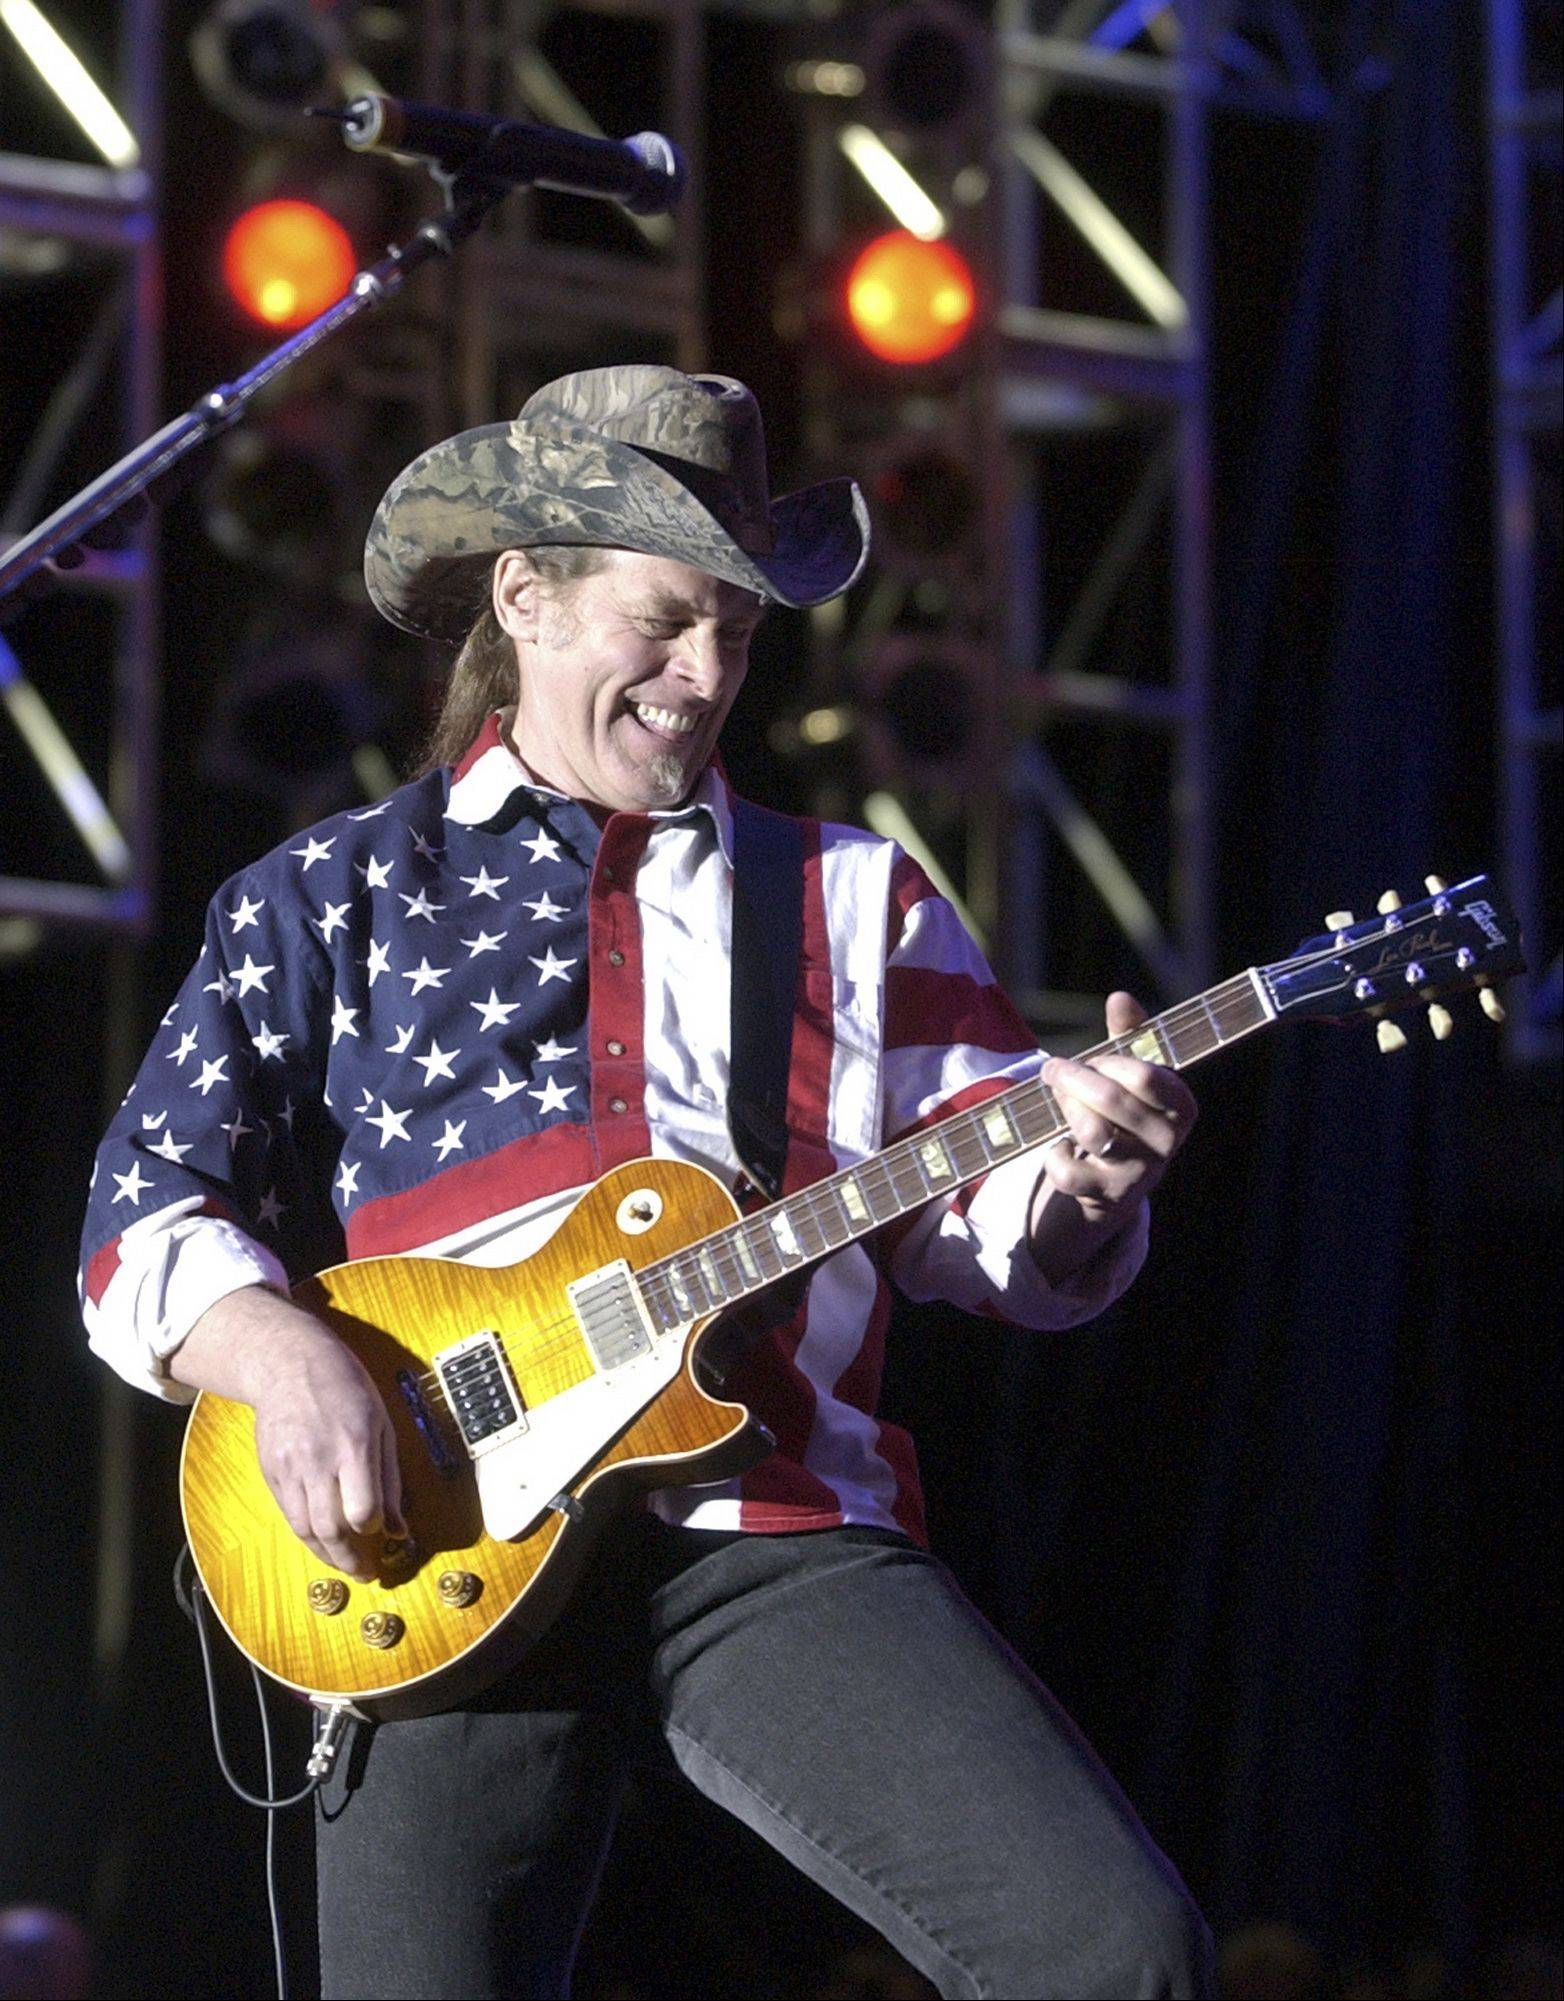 Ted Nugent performs in 2005 at his free Rockin' The Corps concert held at Camp Pendleton Marine Corps Base in San Diego.